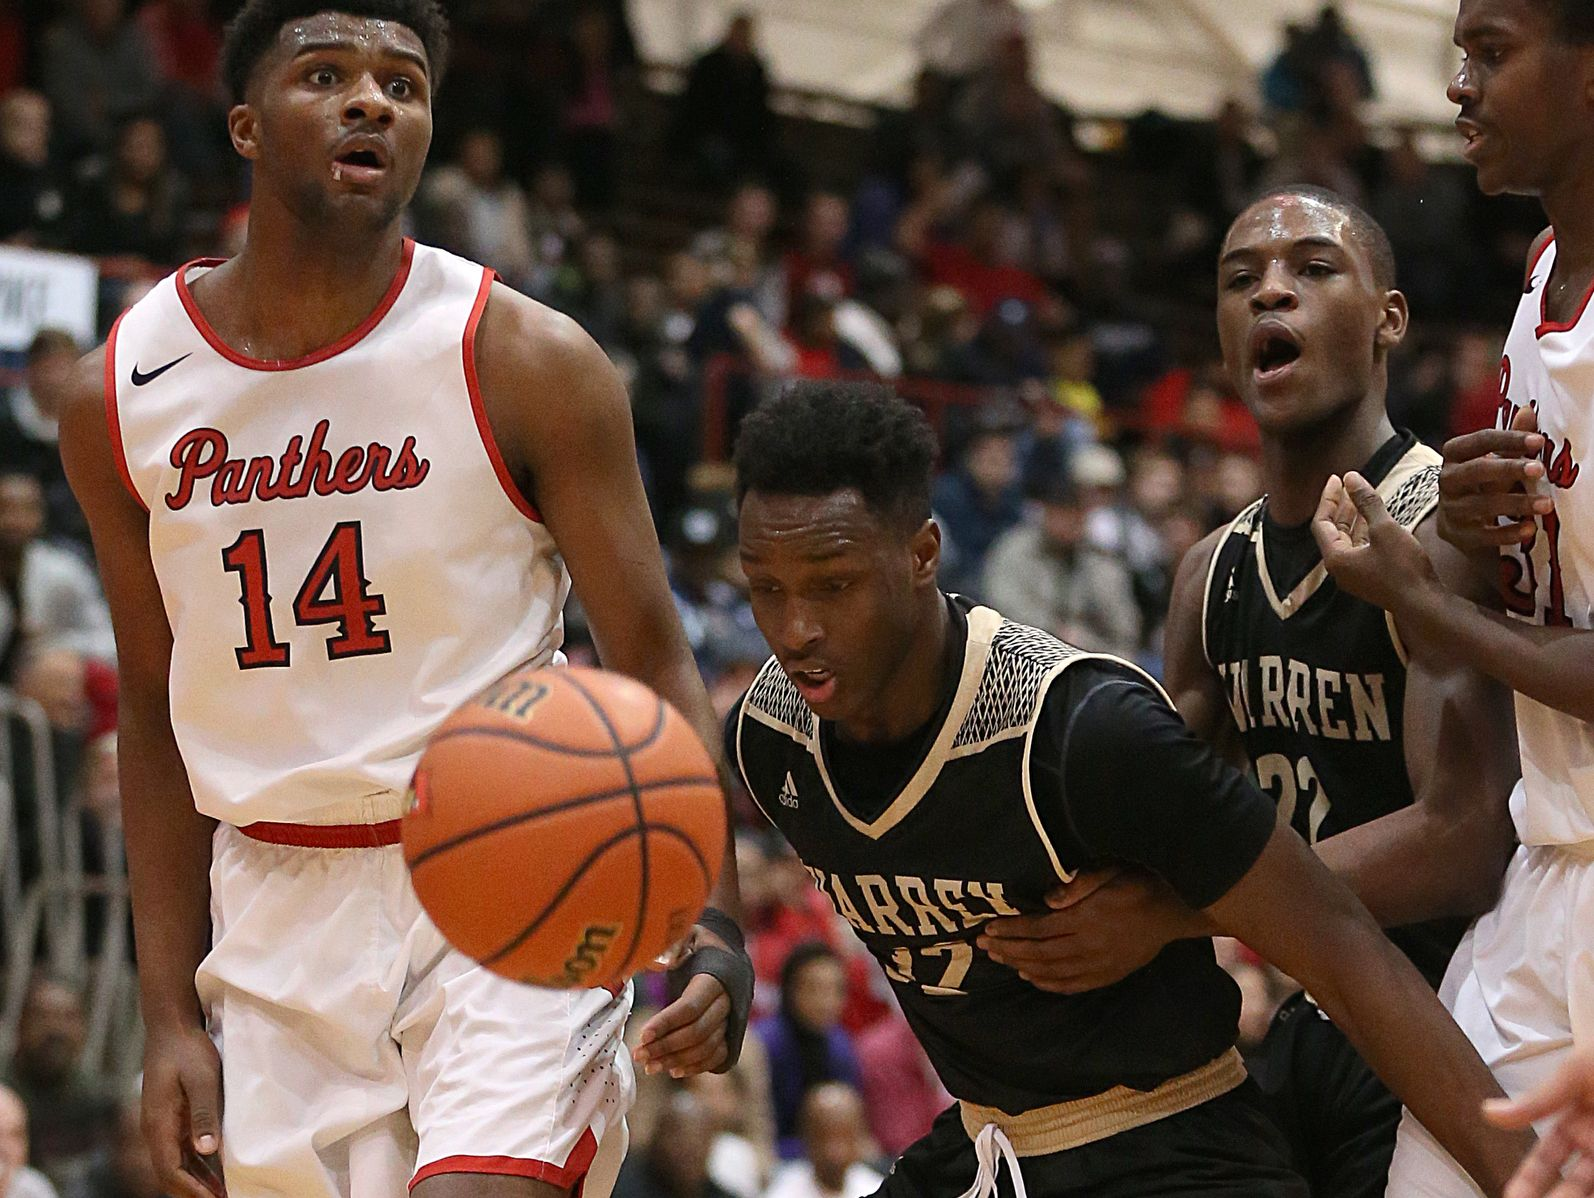 North Central Panthers Emmanuel Little (14) reacts to being called for a foul on Warren Central Warriors Mack Smith (32) during second half action between Warren Central and North Central in Marion County boys semifinals, at Southport High School, Indianapolis, Friday, Jan. 13, 2016. North Central won, 69-65.